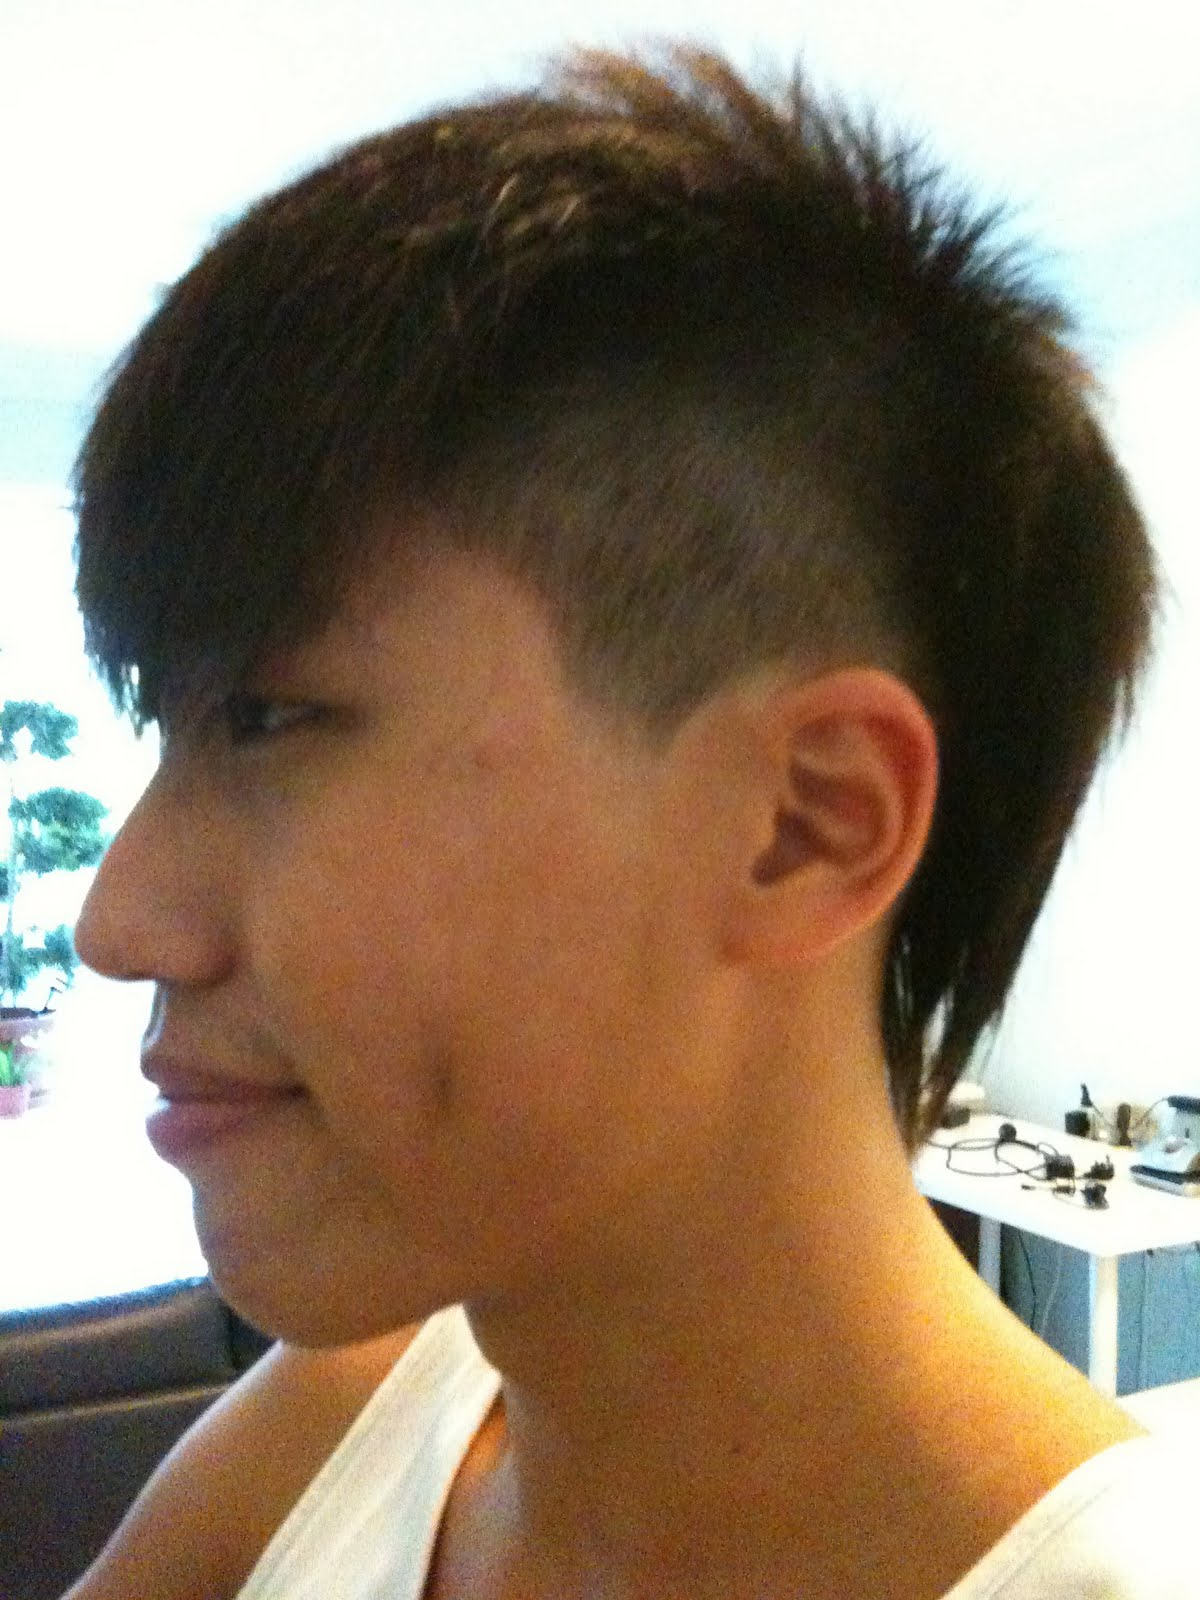 queue hairstyle wikipedia queue hair chinese history for